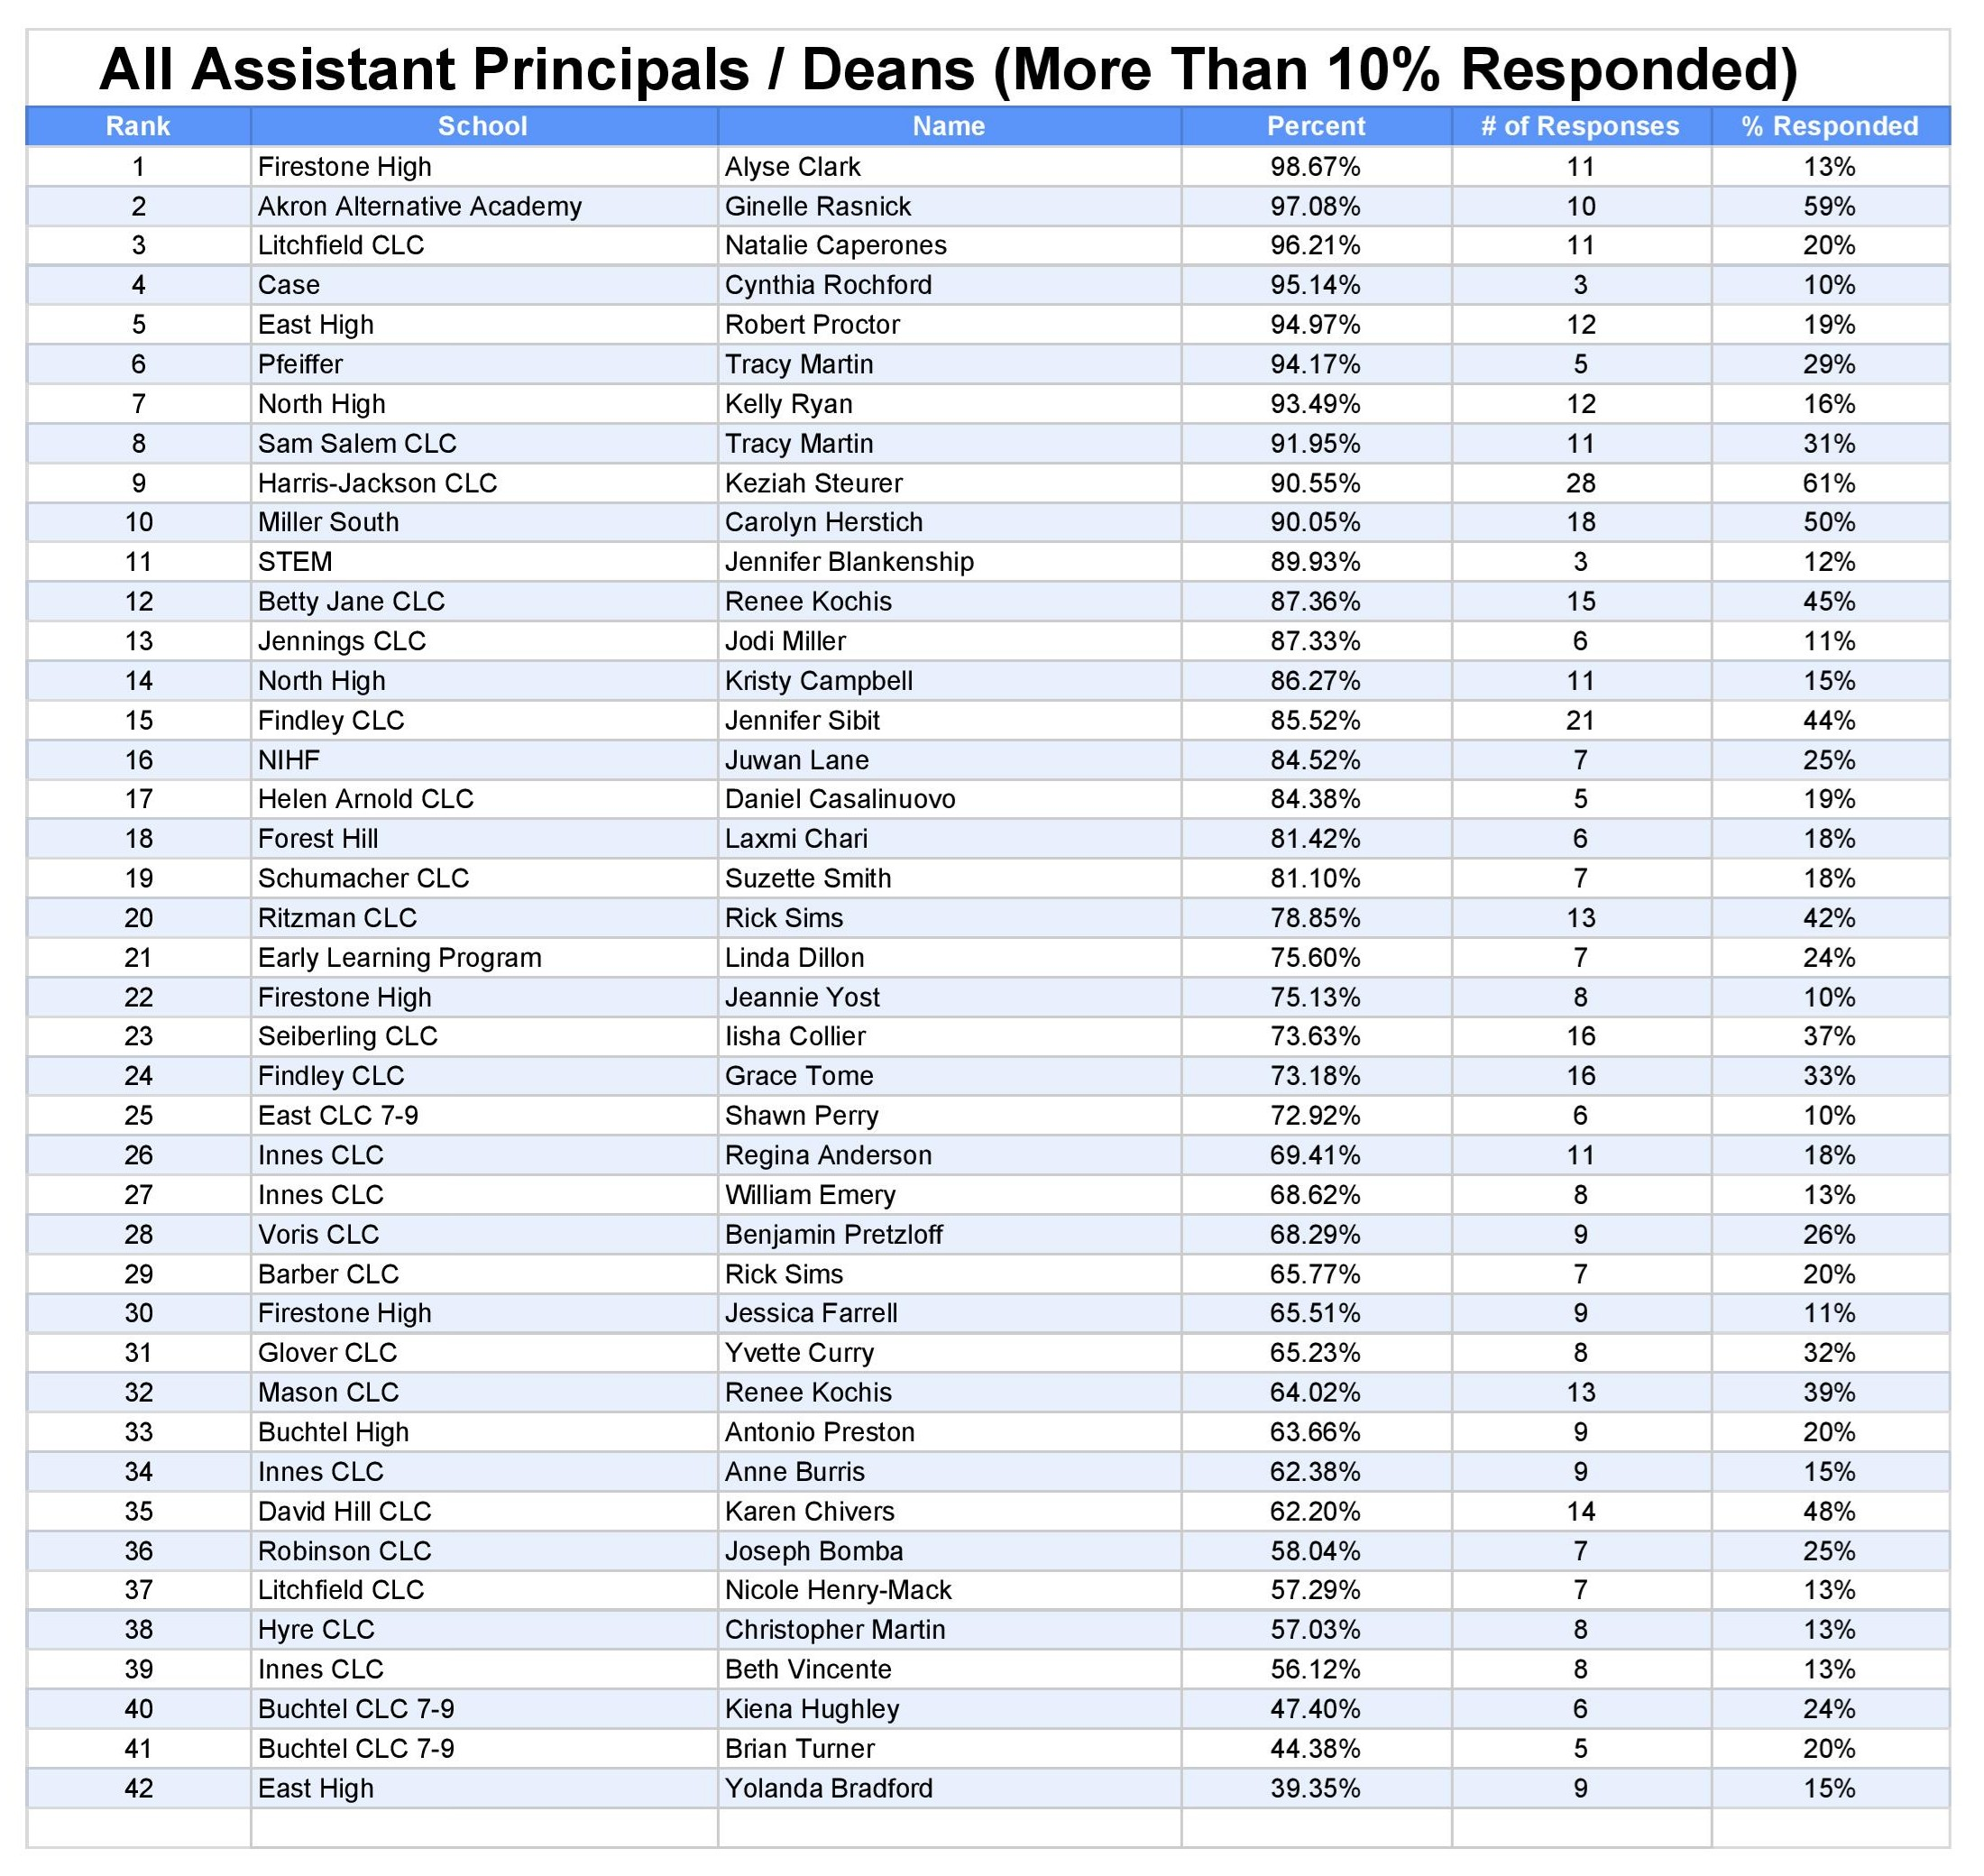 All Assistants _ Deans 2018-19 More than 10  Responded - Copy of Sheet1-page-001.jpg